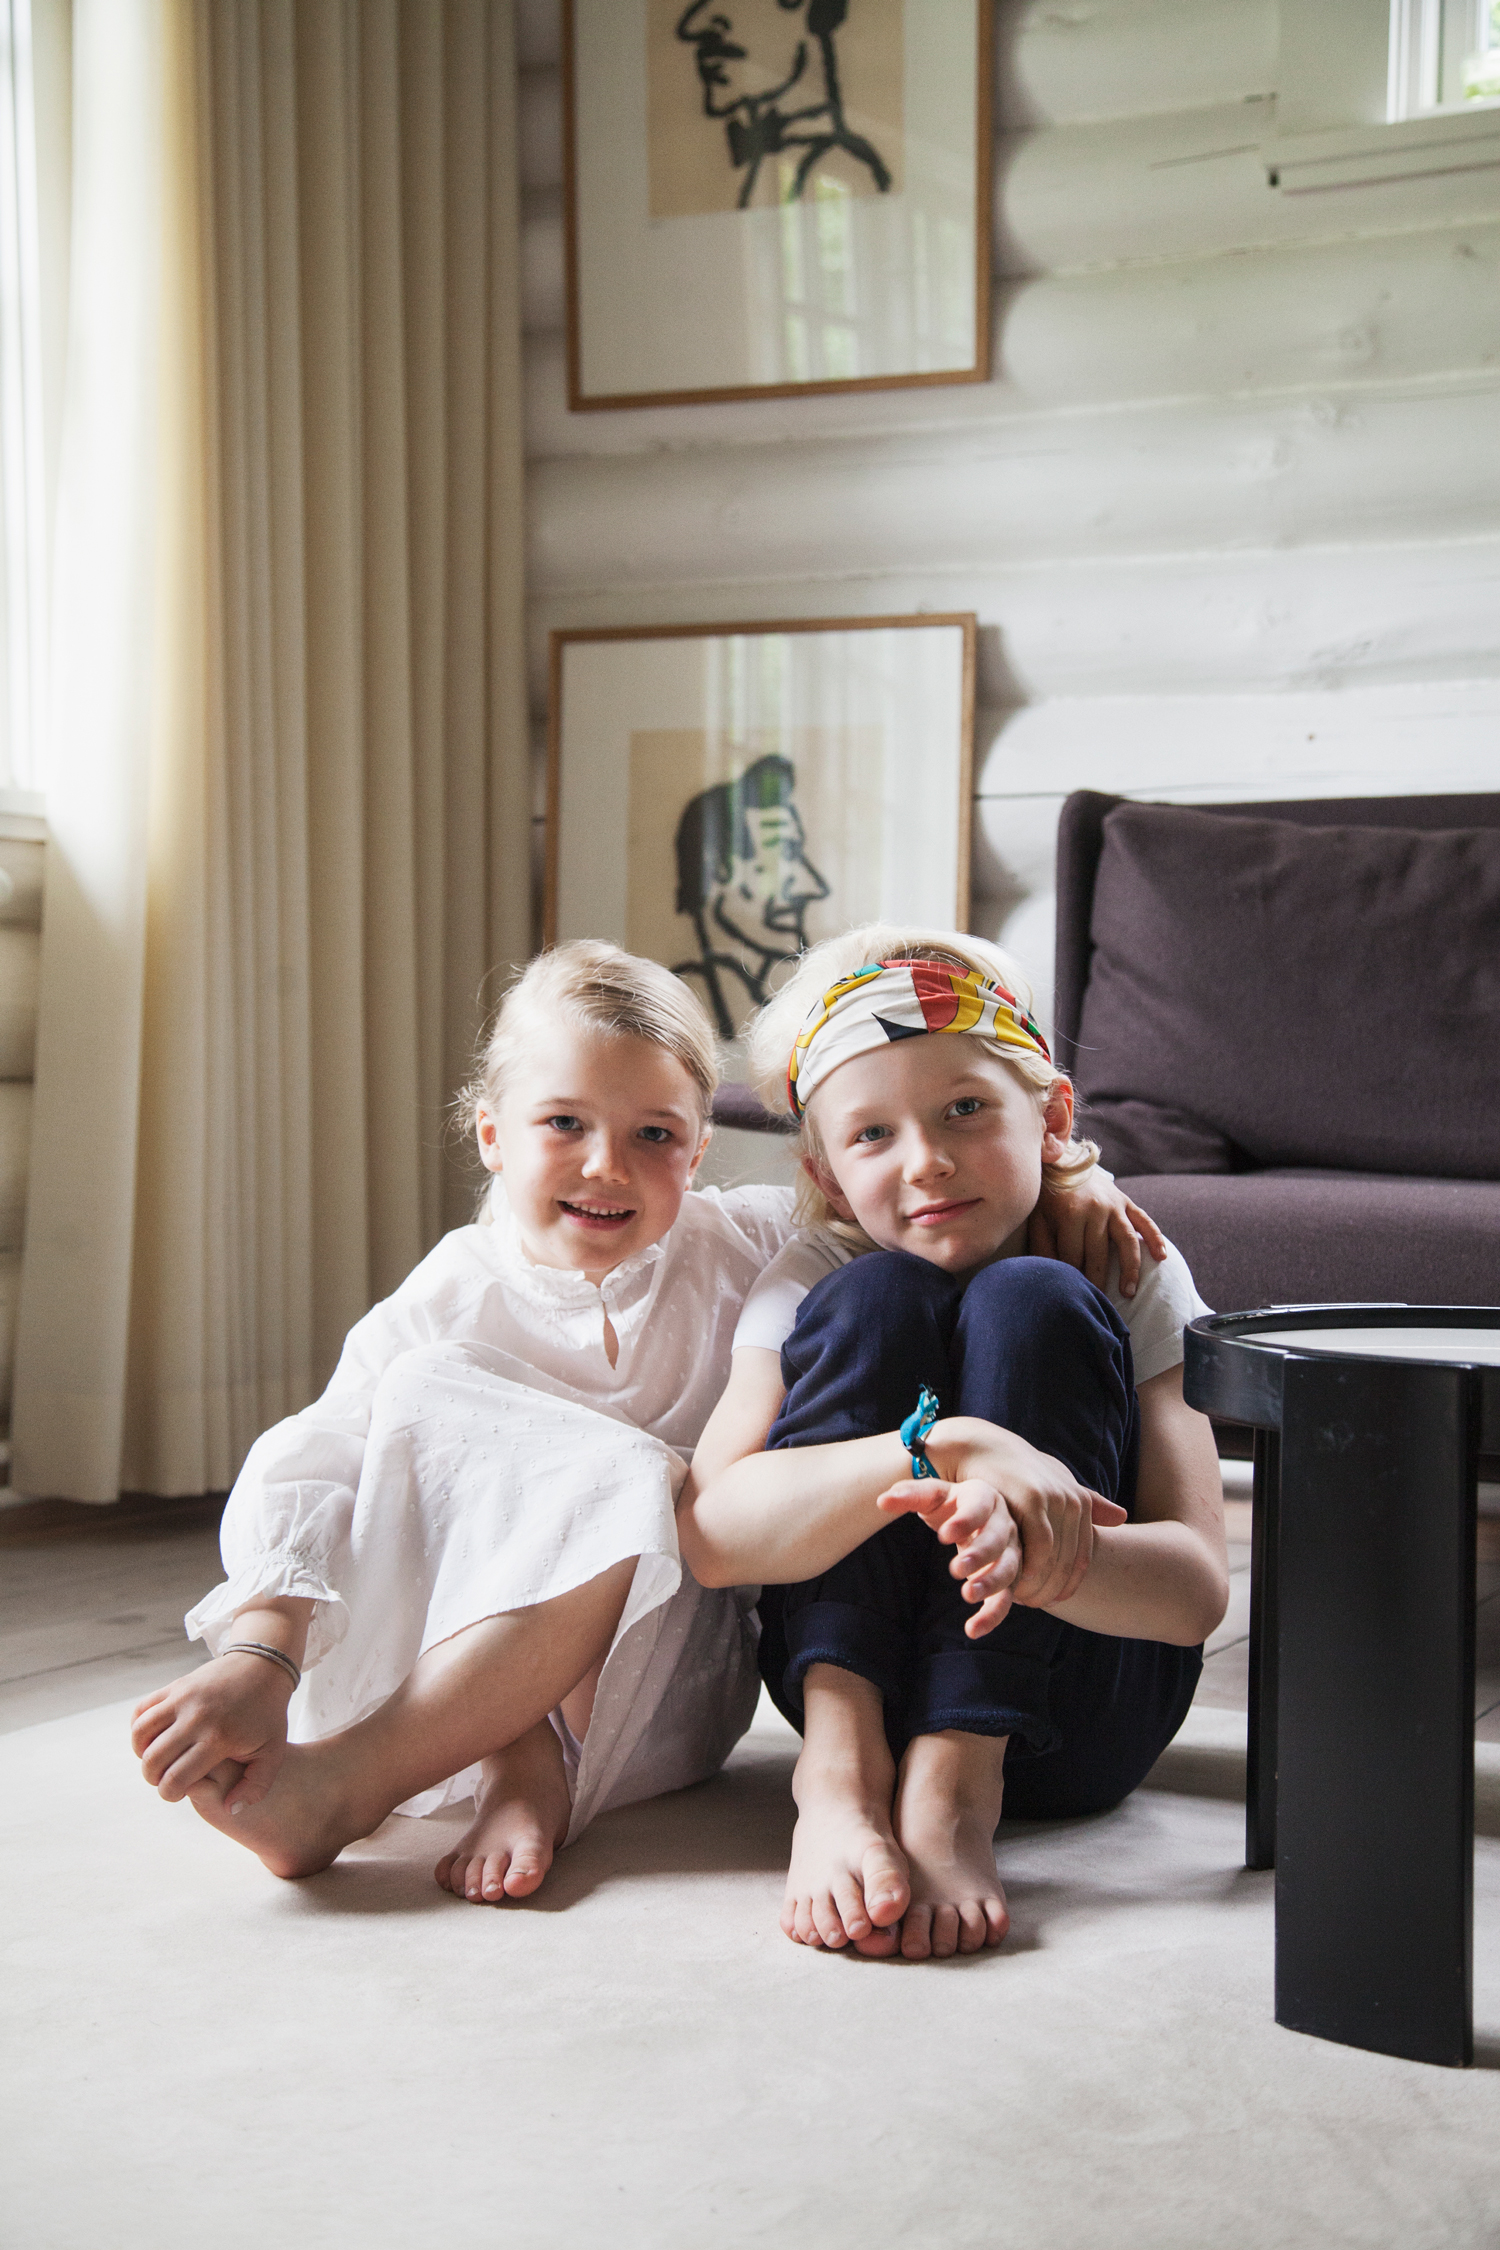 All happy wearing some of their favourites – a headband and the  Martha dress .